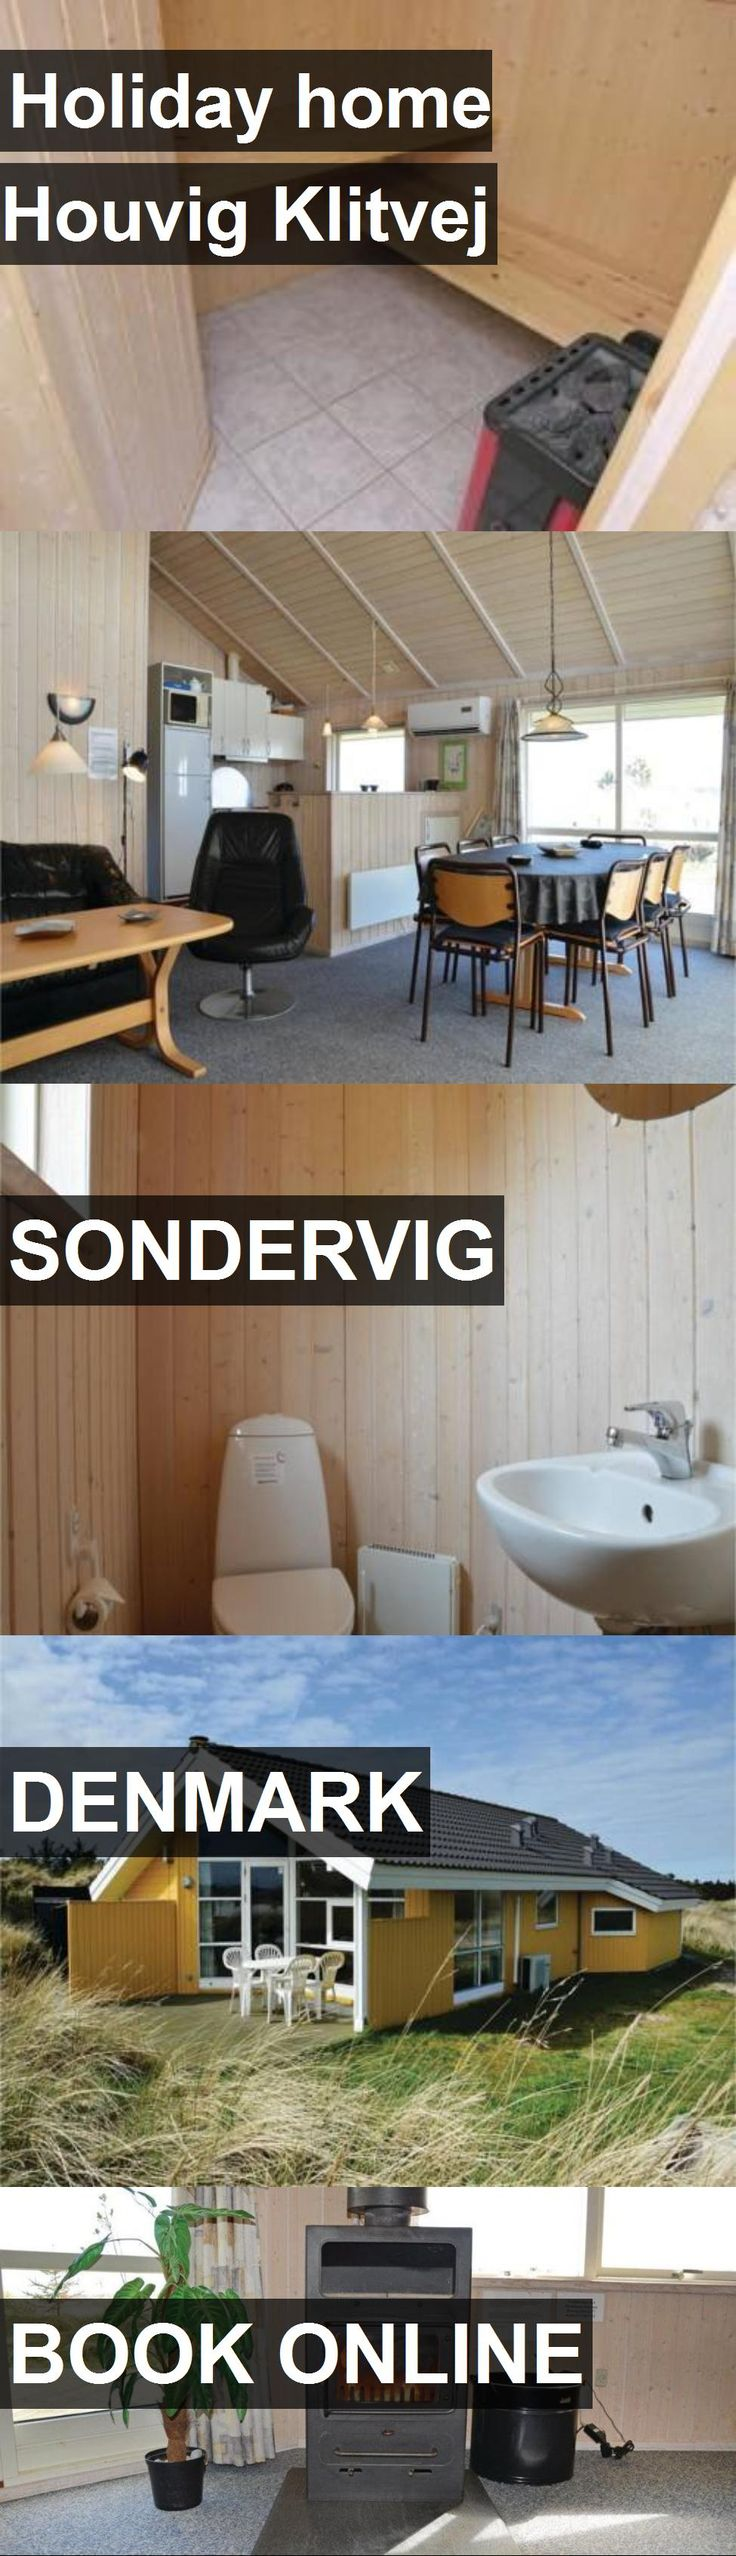 Hotel Holiday home Houvig Klitvej in Sondervig, Denmark. For more information, photos, reviews and best prices please follow the link. #Denmark #Sondervig #travel #vacation #hotel